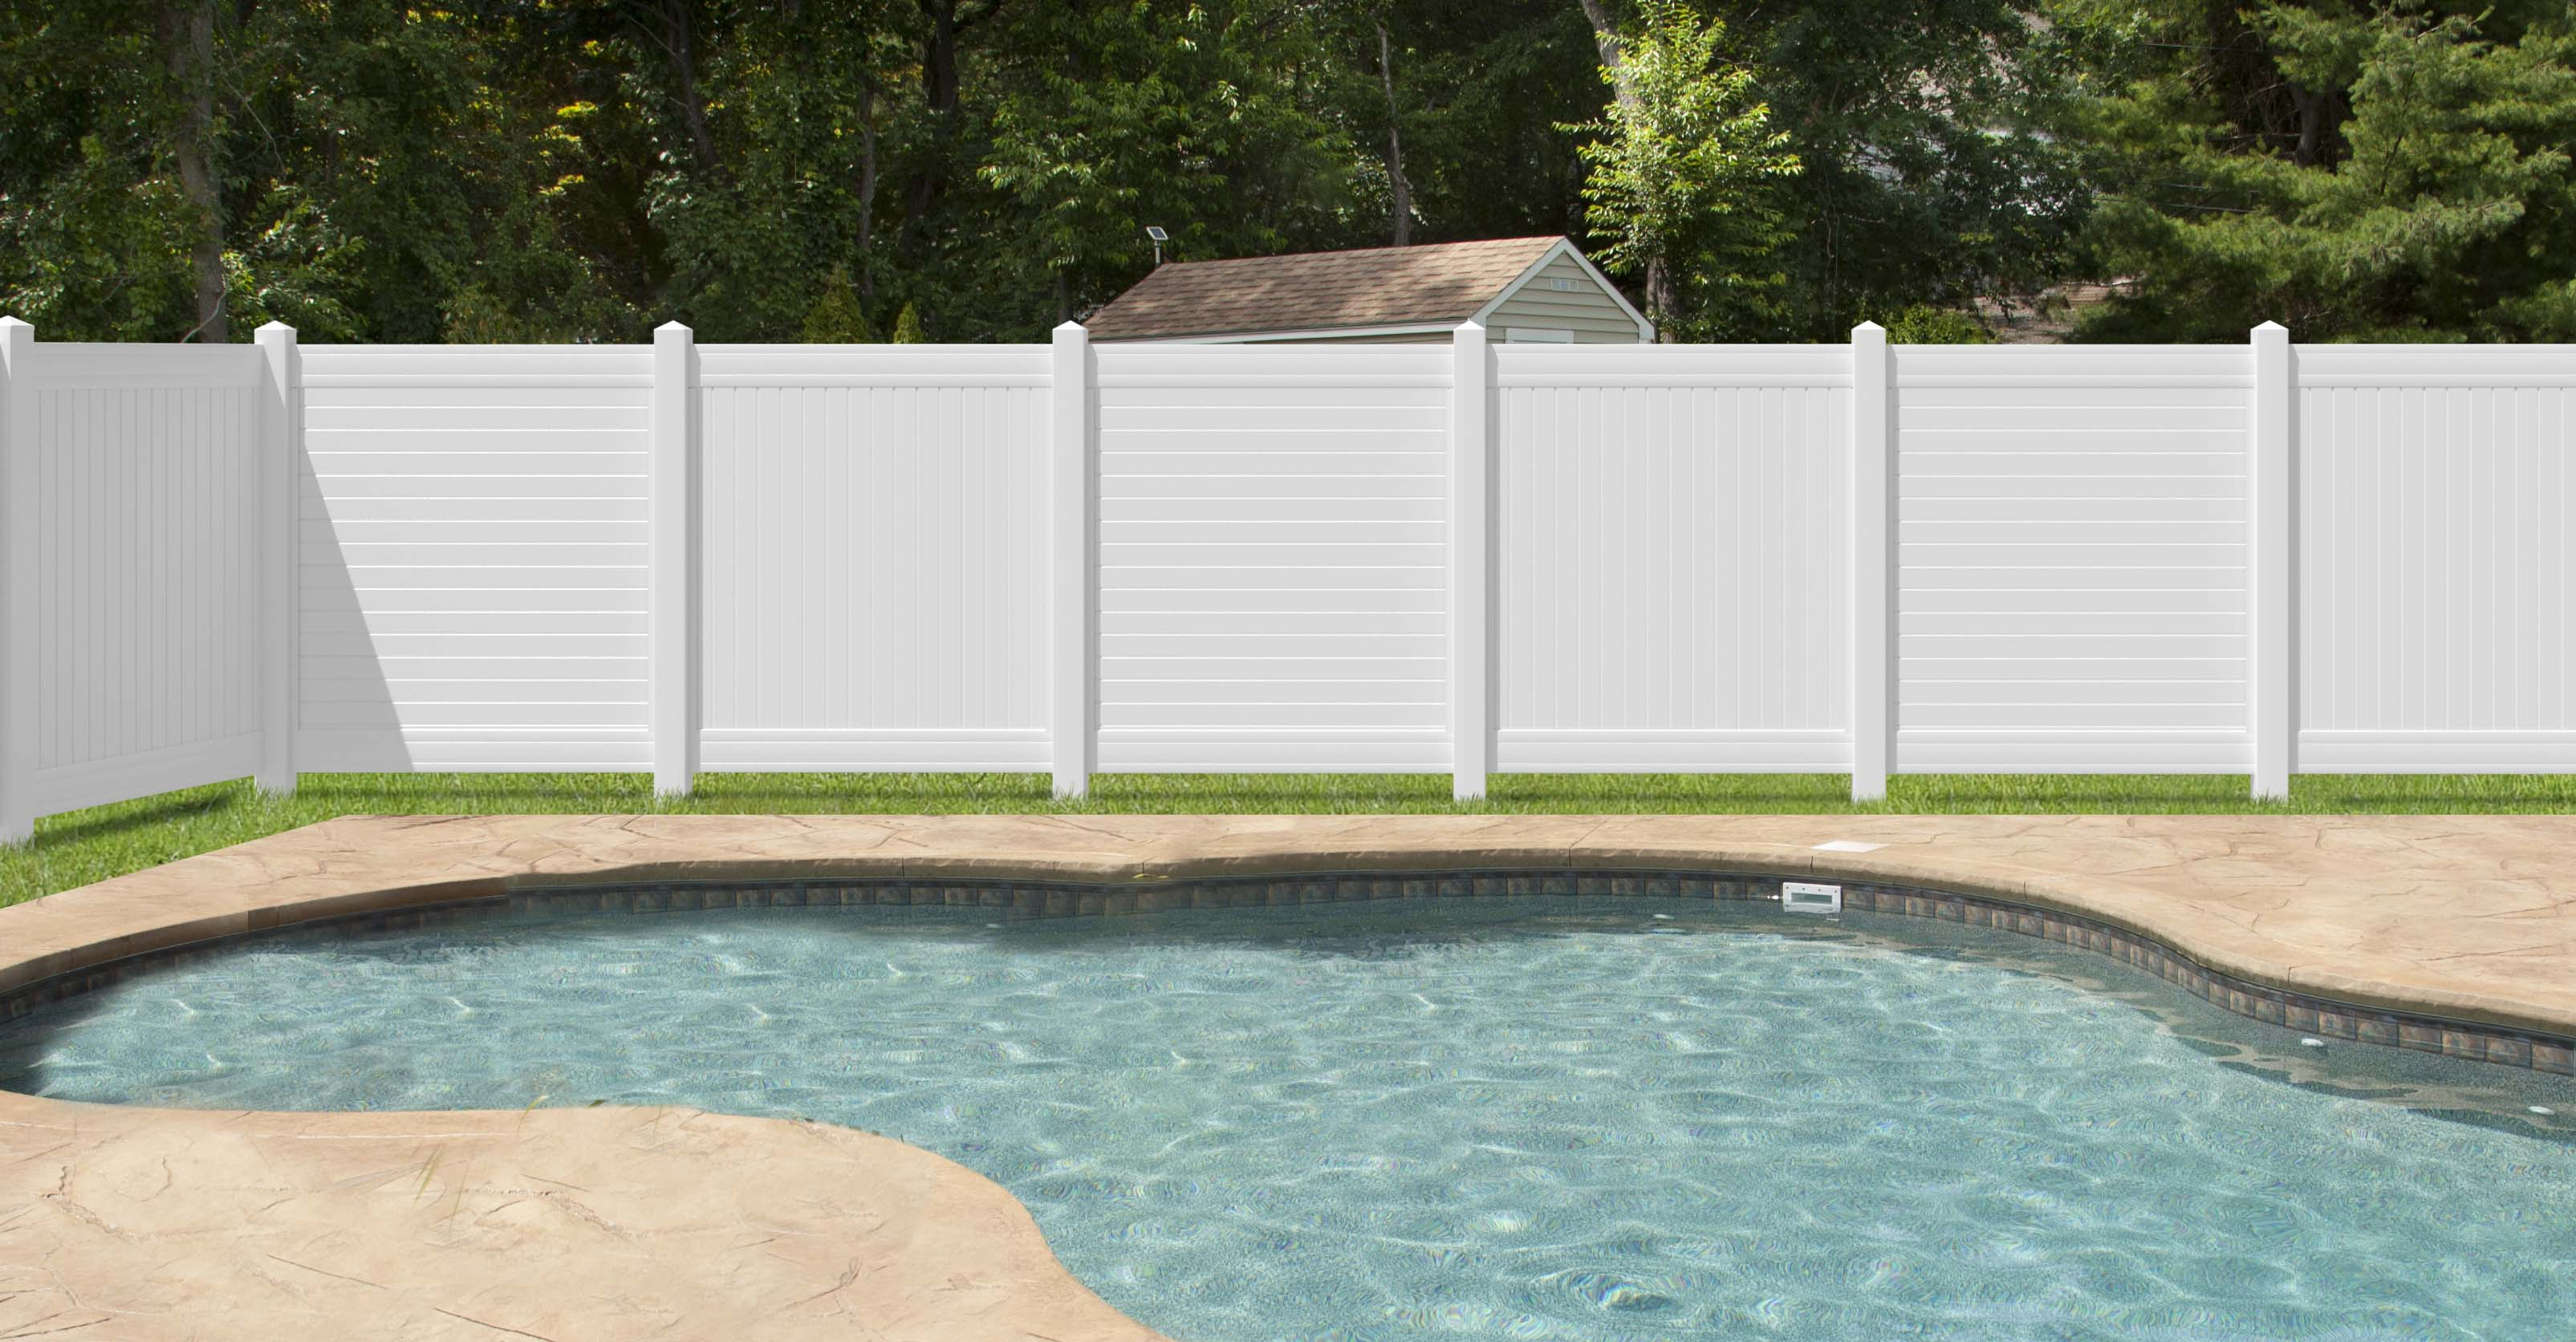 54 How Much Cost Fence Backyard Home Decor for How Much Does A Backyard Fence Cost